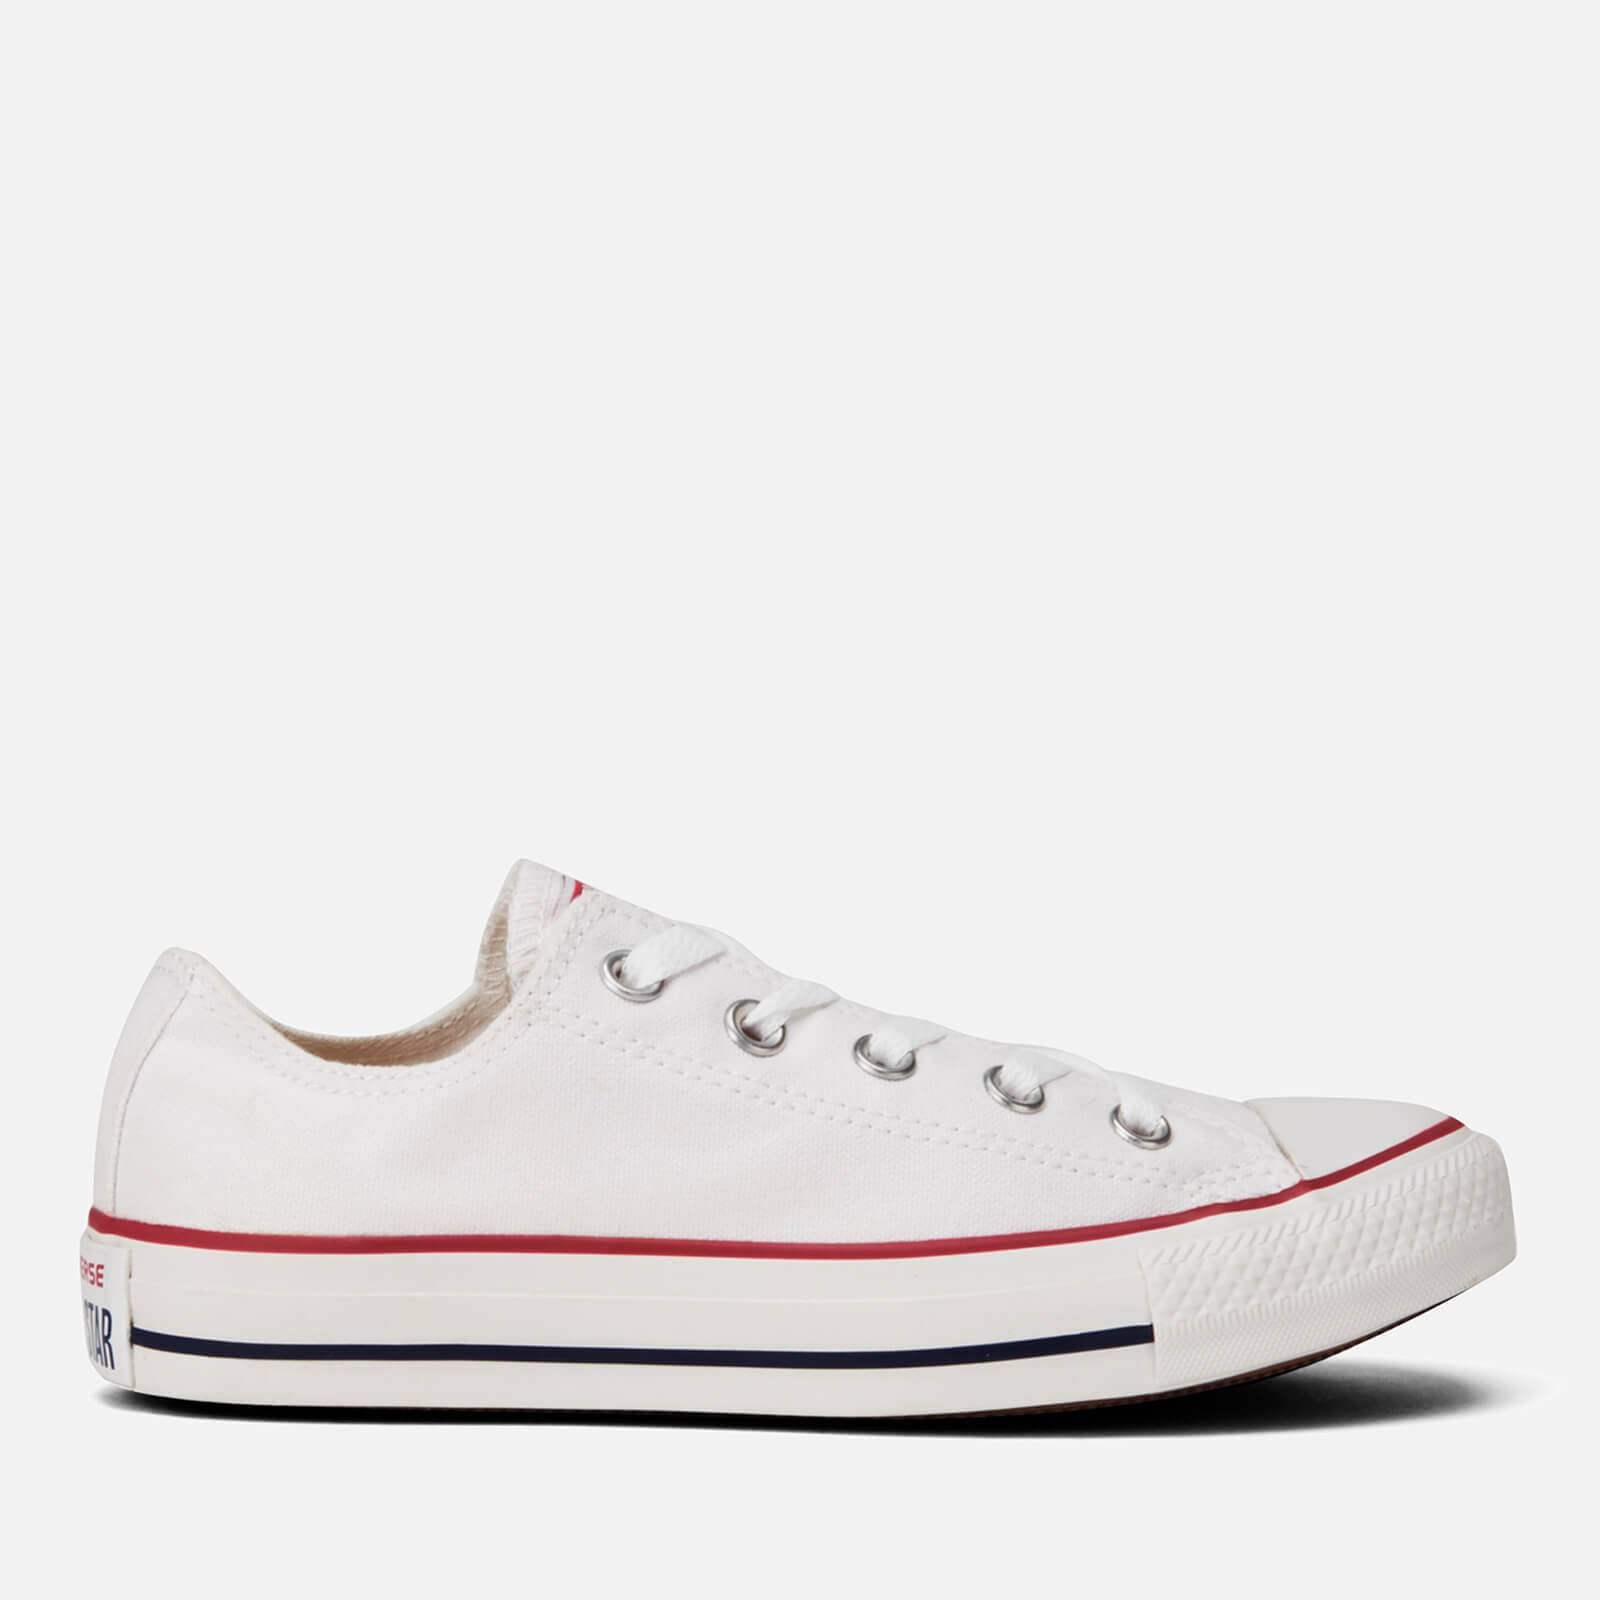 Converse Chuck Taylor All Star Ox Trainers - Optical White - UK 7